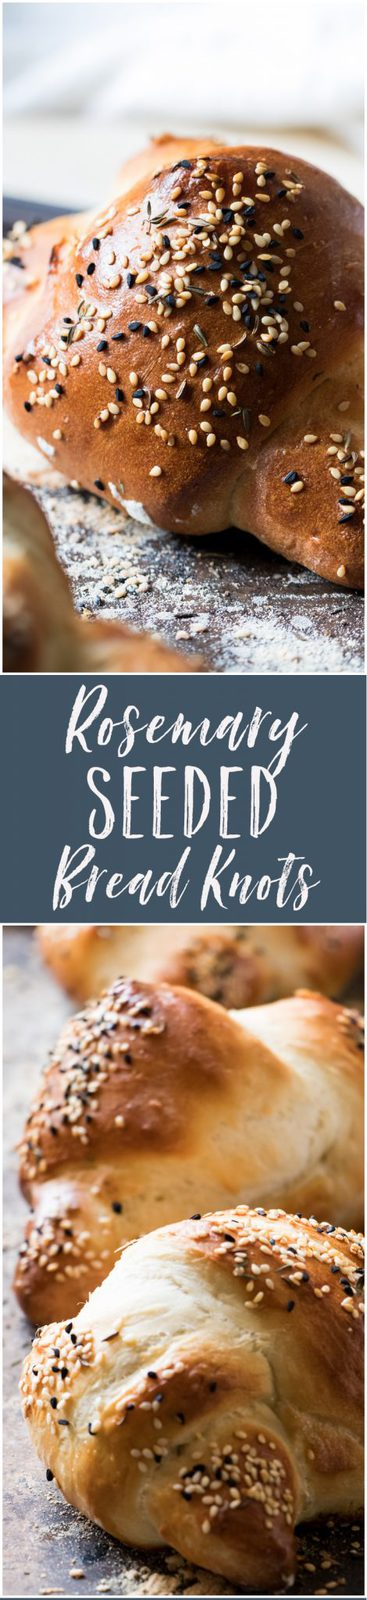 These rosemary seeded bread knots are  simple to make and are perfect for your holiday table or with a hearty soup. Made using a basic bread dough.